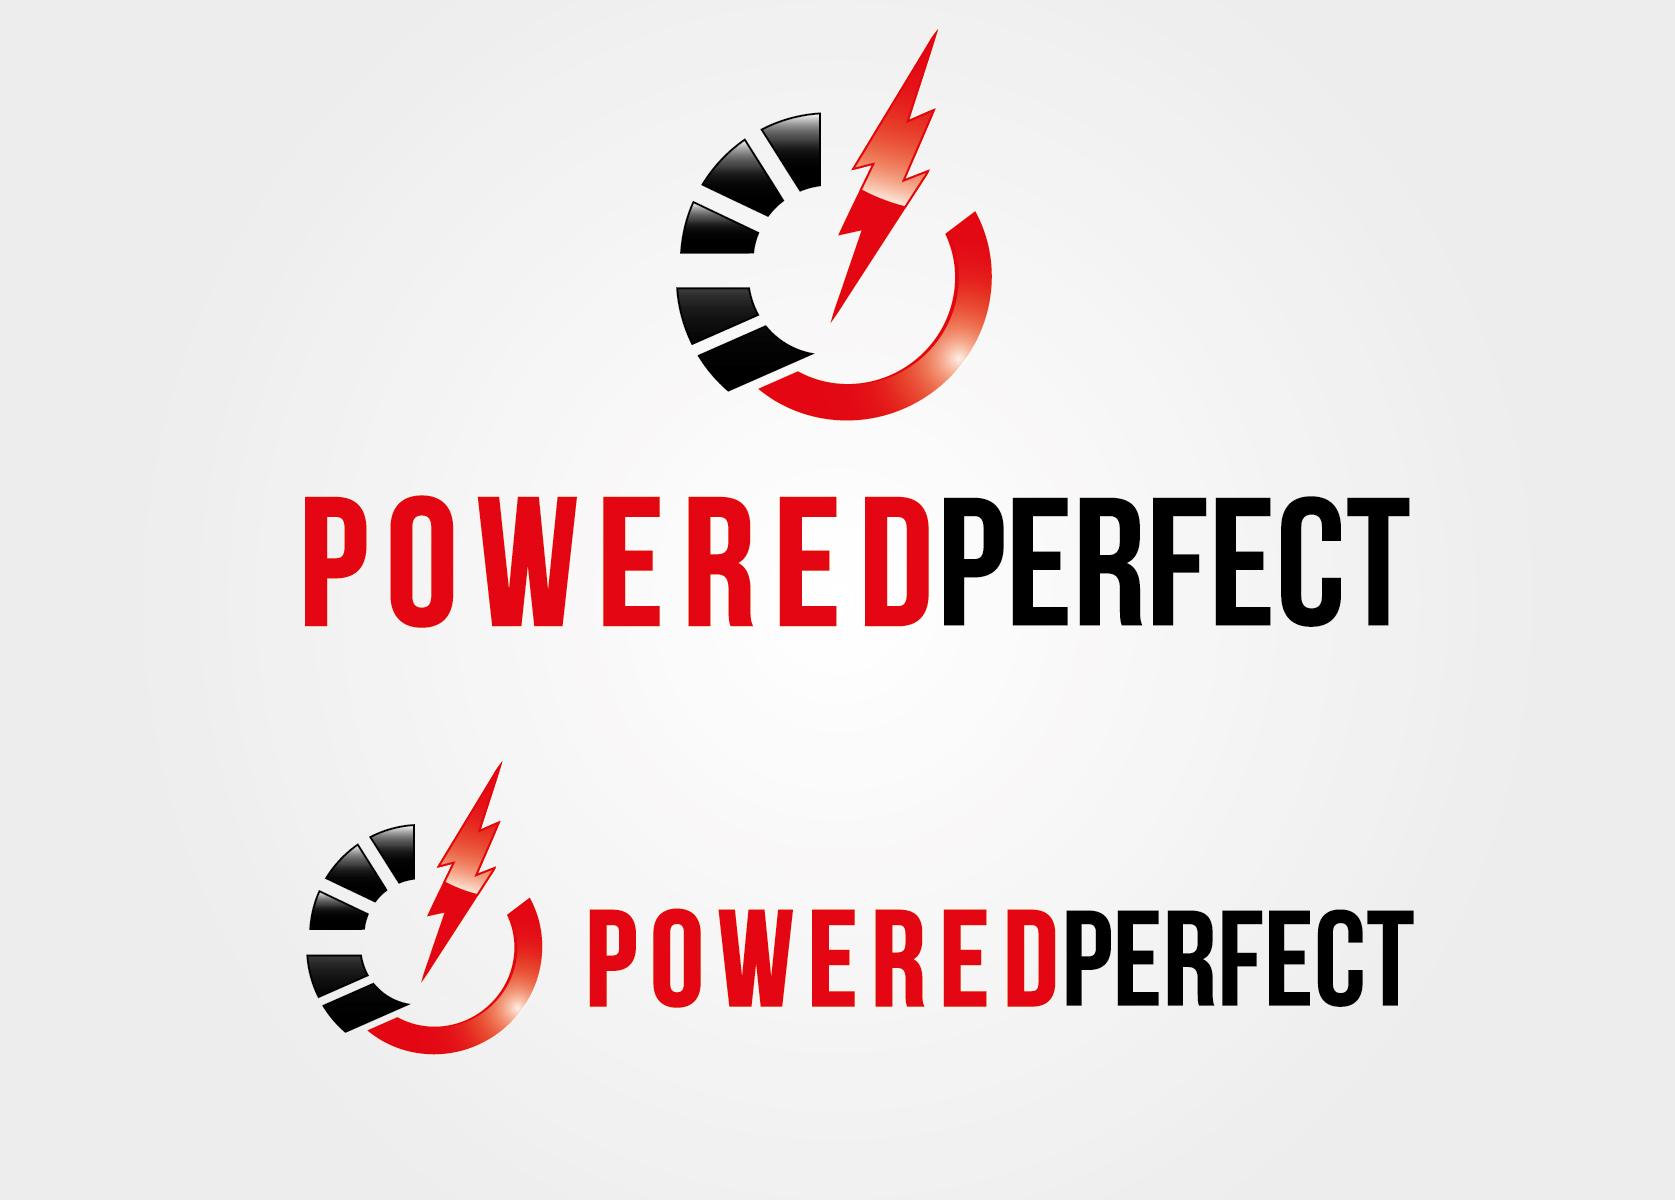 Logo Design by VENTSISLAV KOVACHEV - Entry No. 7 in the Logo Design Contest Captivating Logo Design for Powered Perfect.